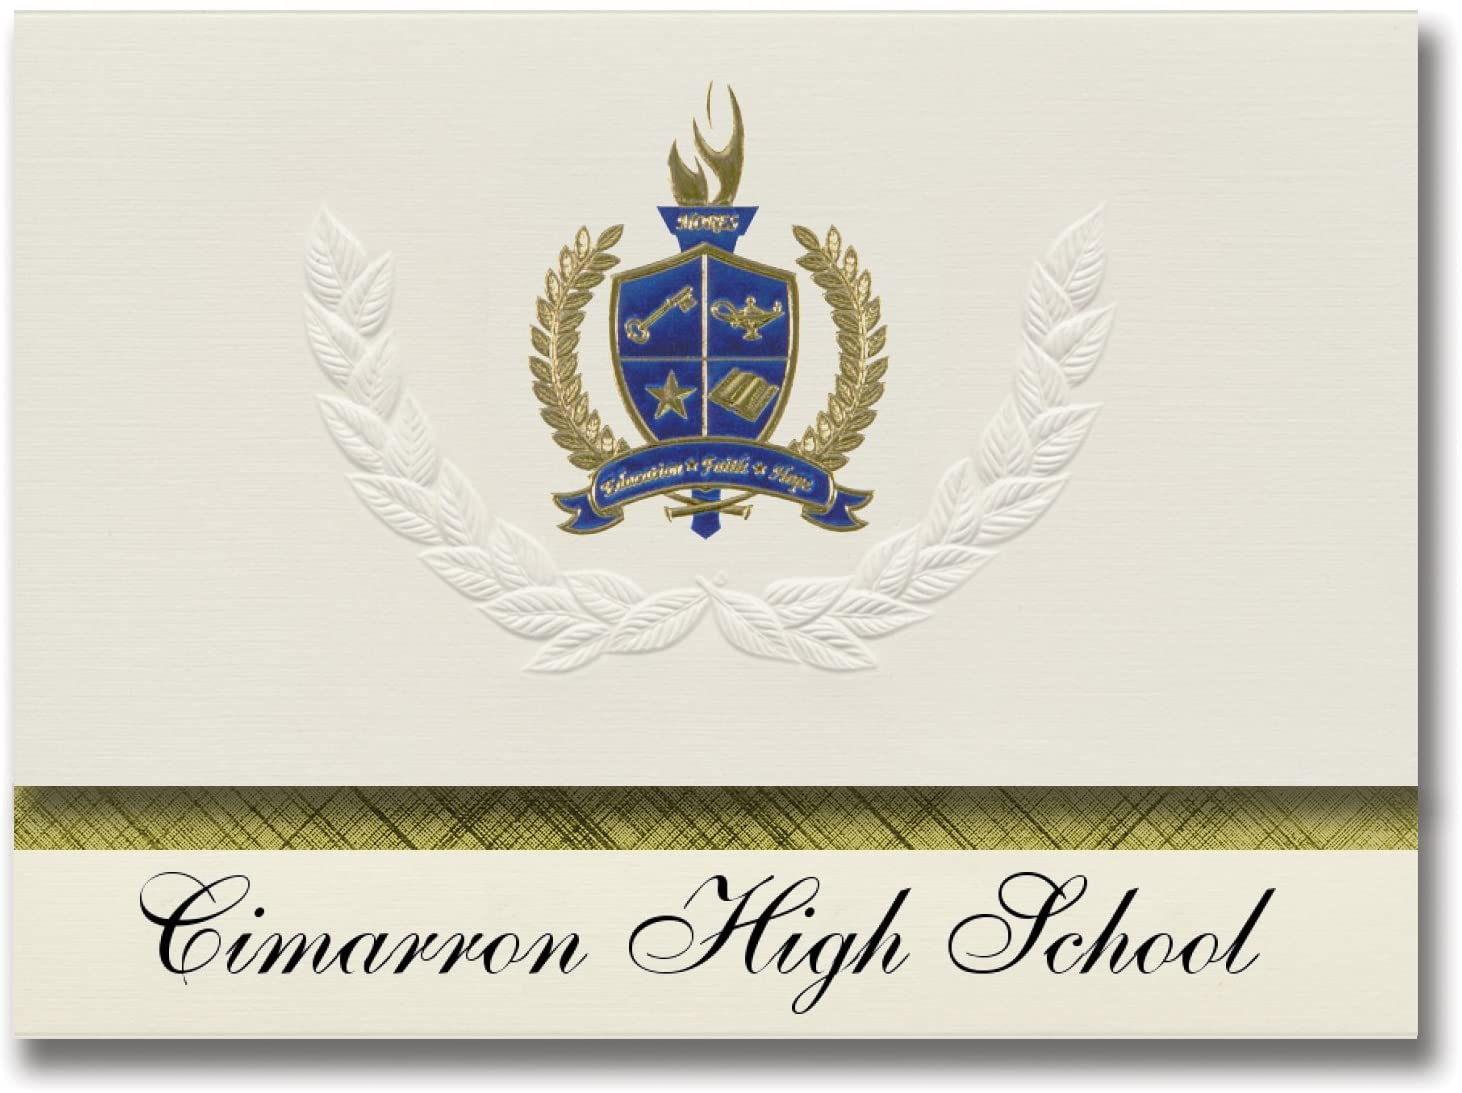 Signature Announcements Cimarron High School (Lahoma, OK) Graduation Announcements, Presidential style, Basic package of 25 with Gold & Blue Metallic Foil seal